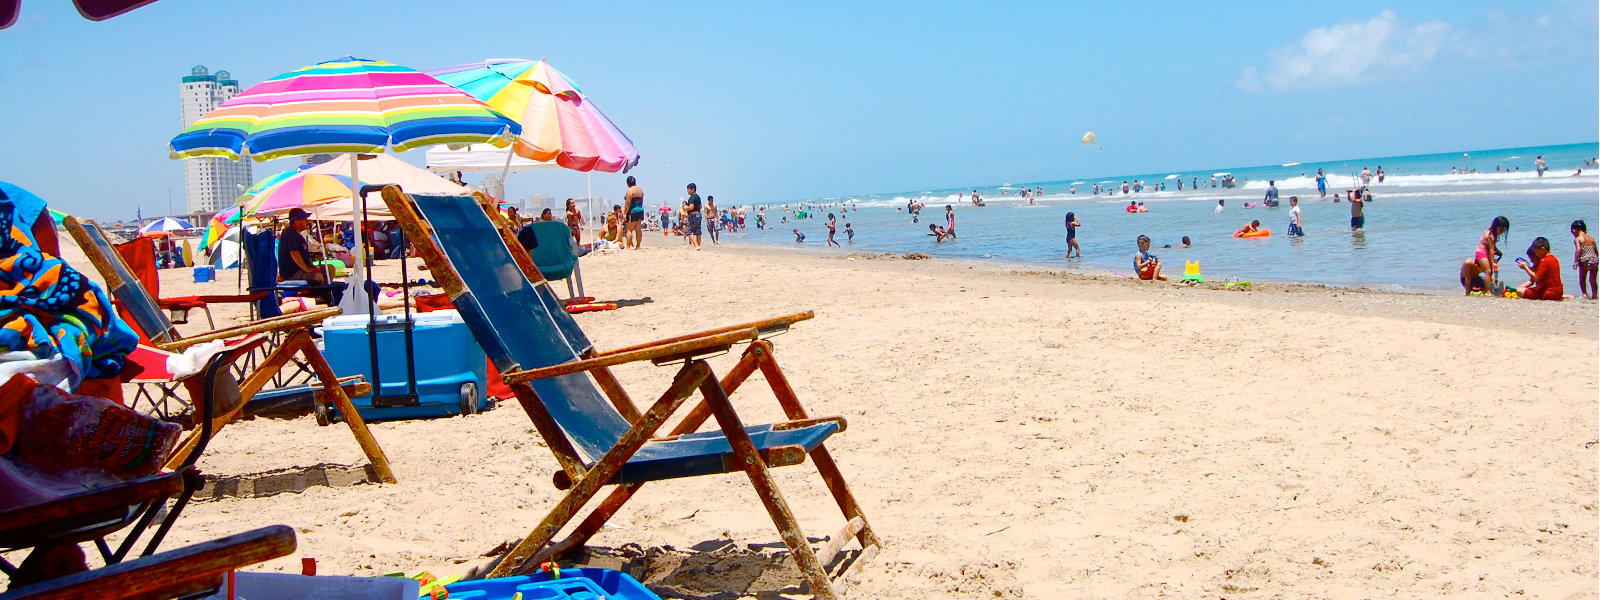 South Padre Island Beach; Sunny Day with Colorful Chairs and Umbrellas; CQ Integrative Health Out of Town Patients